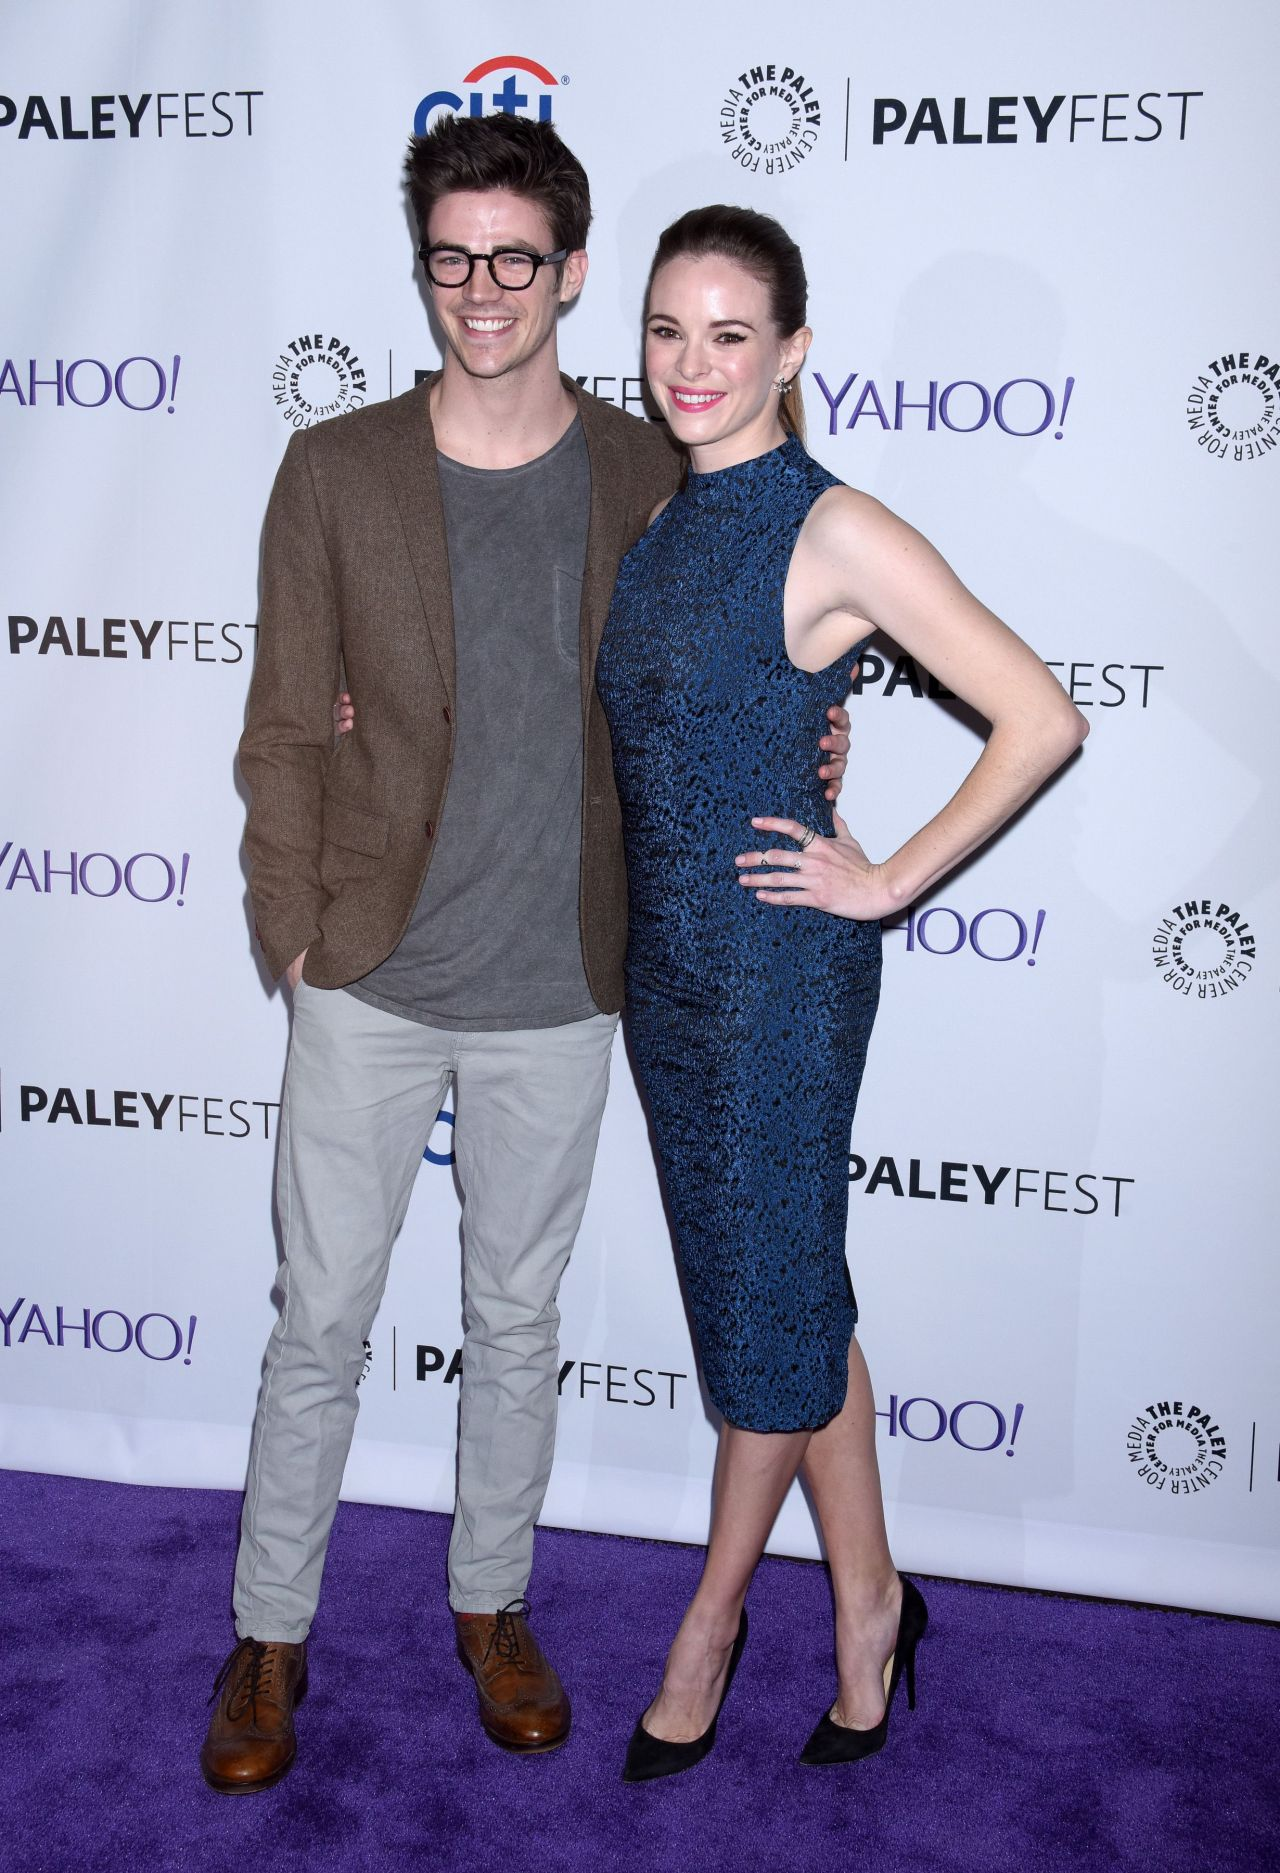 Danielle panabaker and boyfriend